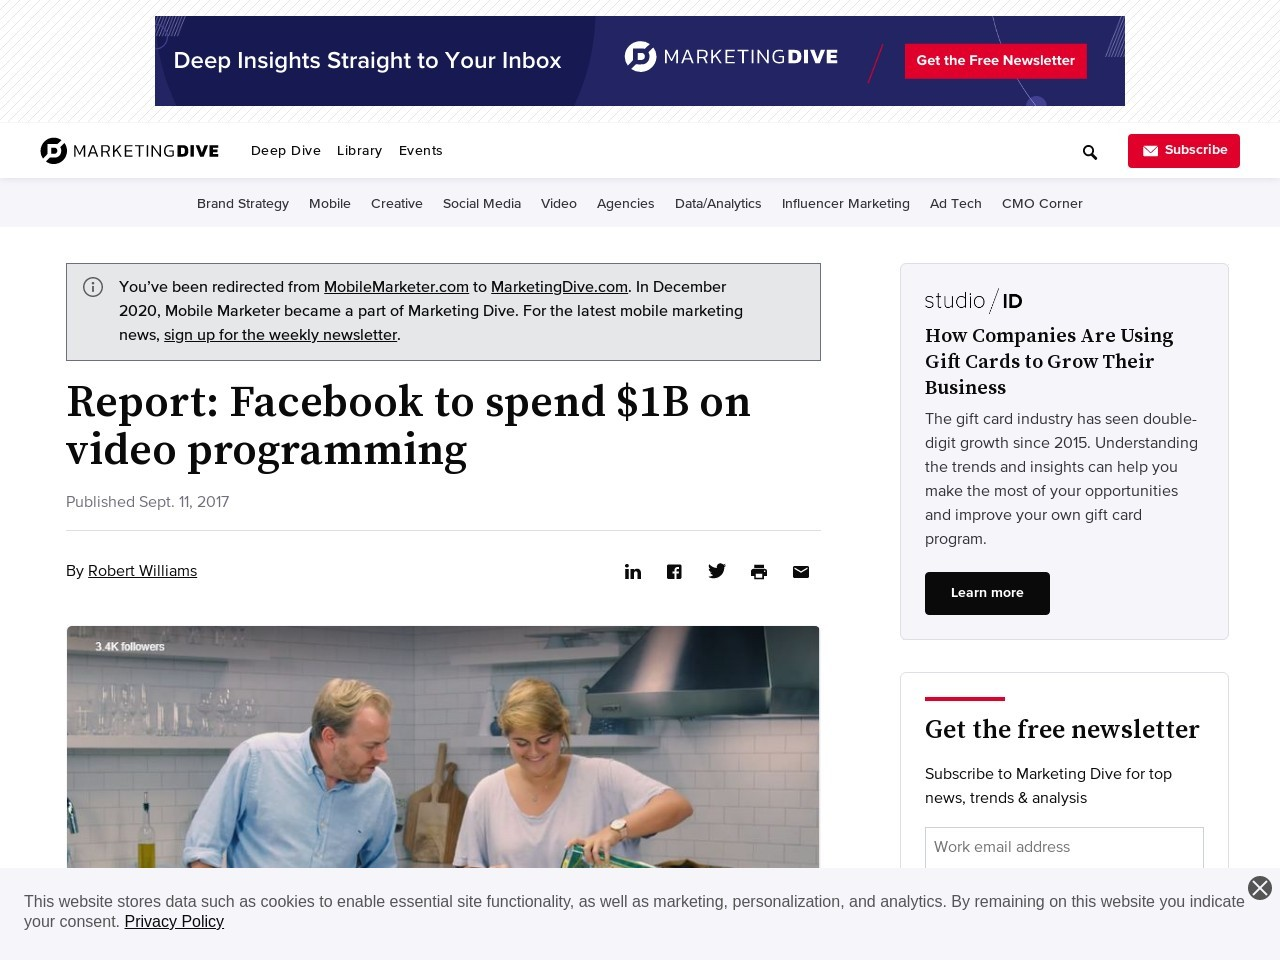 Report: Facebook to spend $1B on video programming